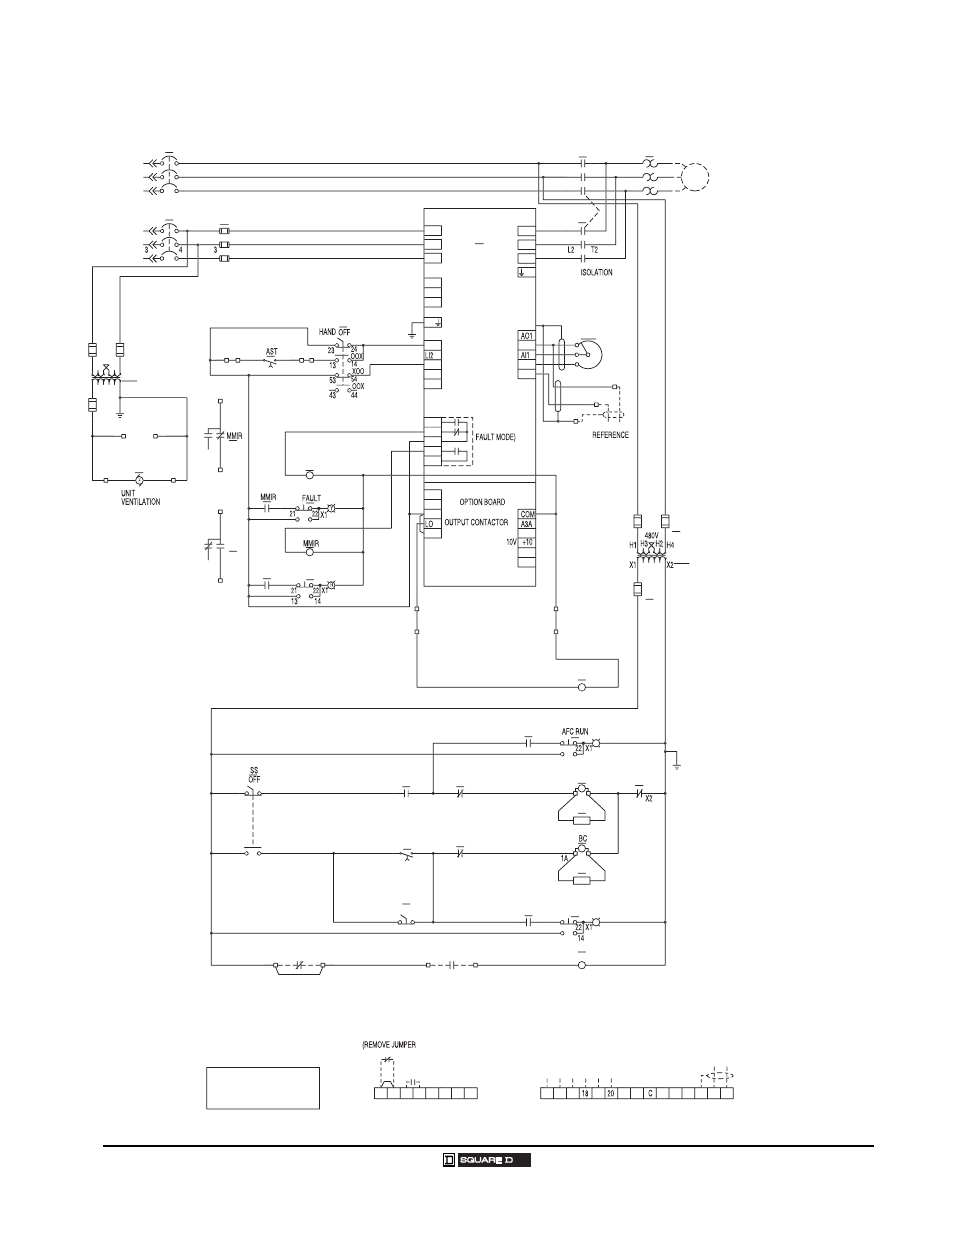 Class 8998 Motor Control Centers  Wiring Diagrams